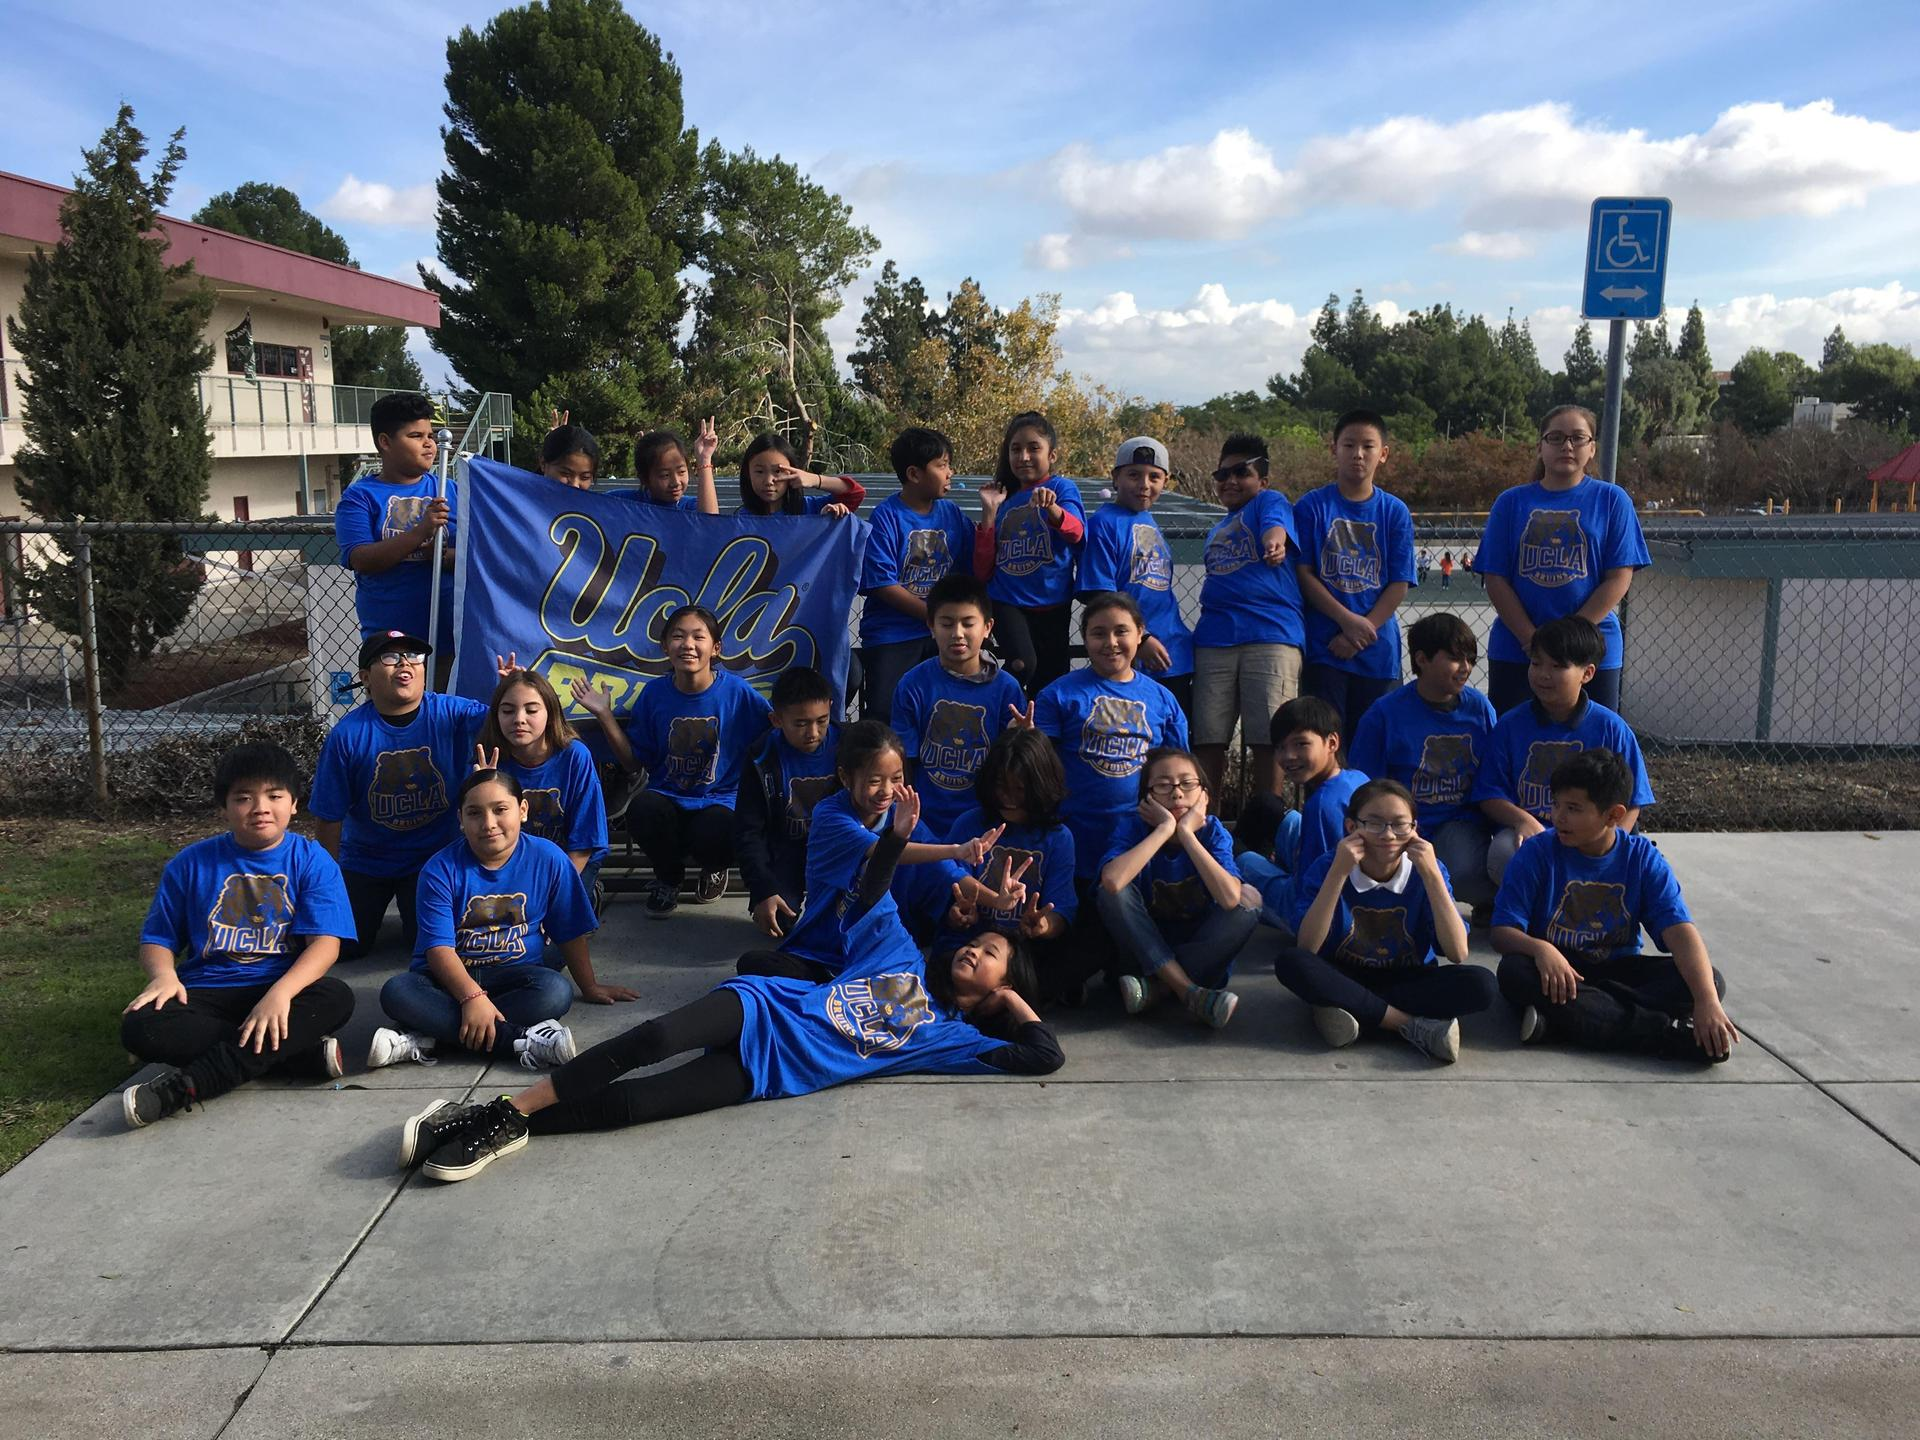 Room 1 Students in UCLA shirts